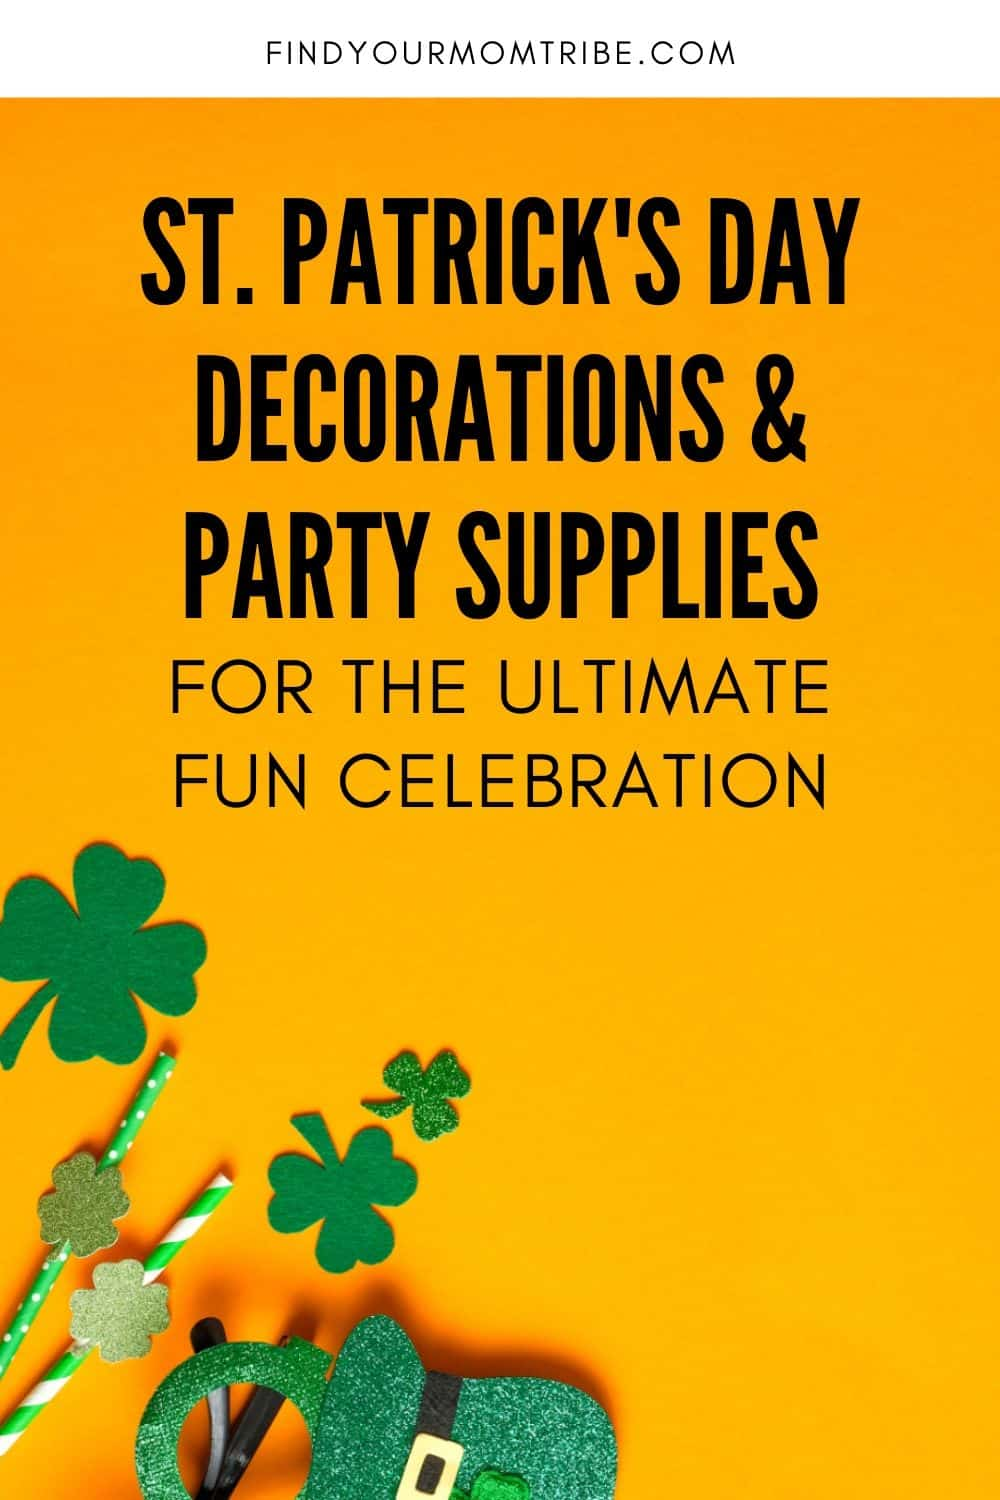 Pinterest St. Patrick's Day Decorations and Party Supplies